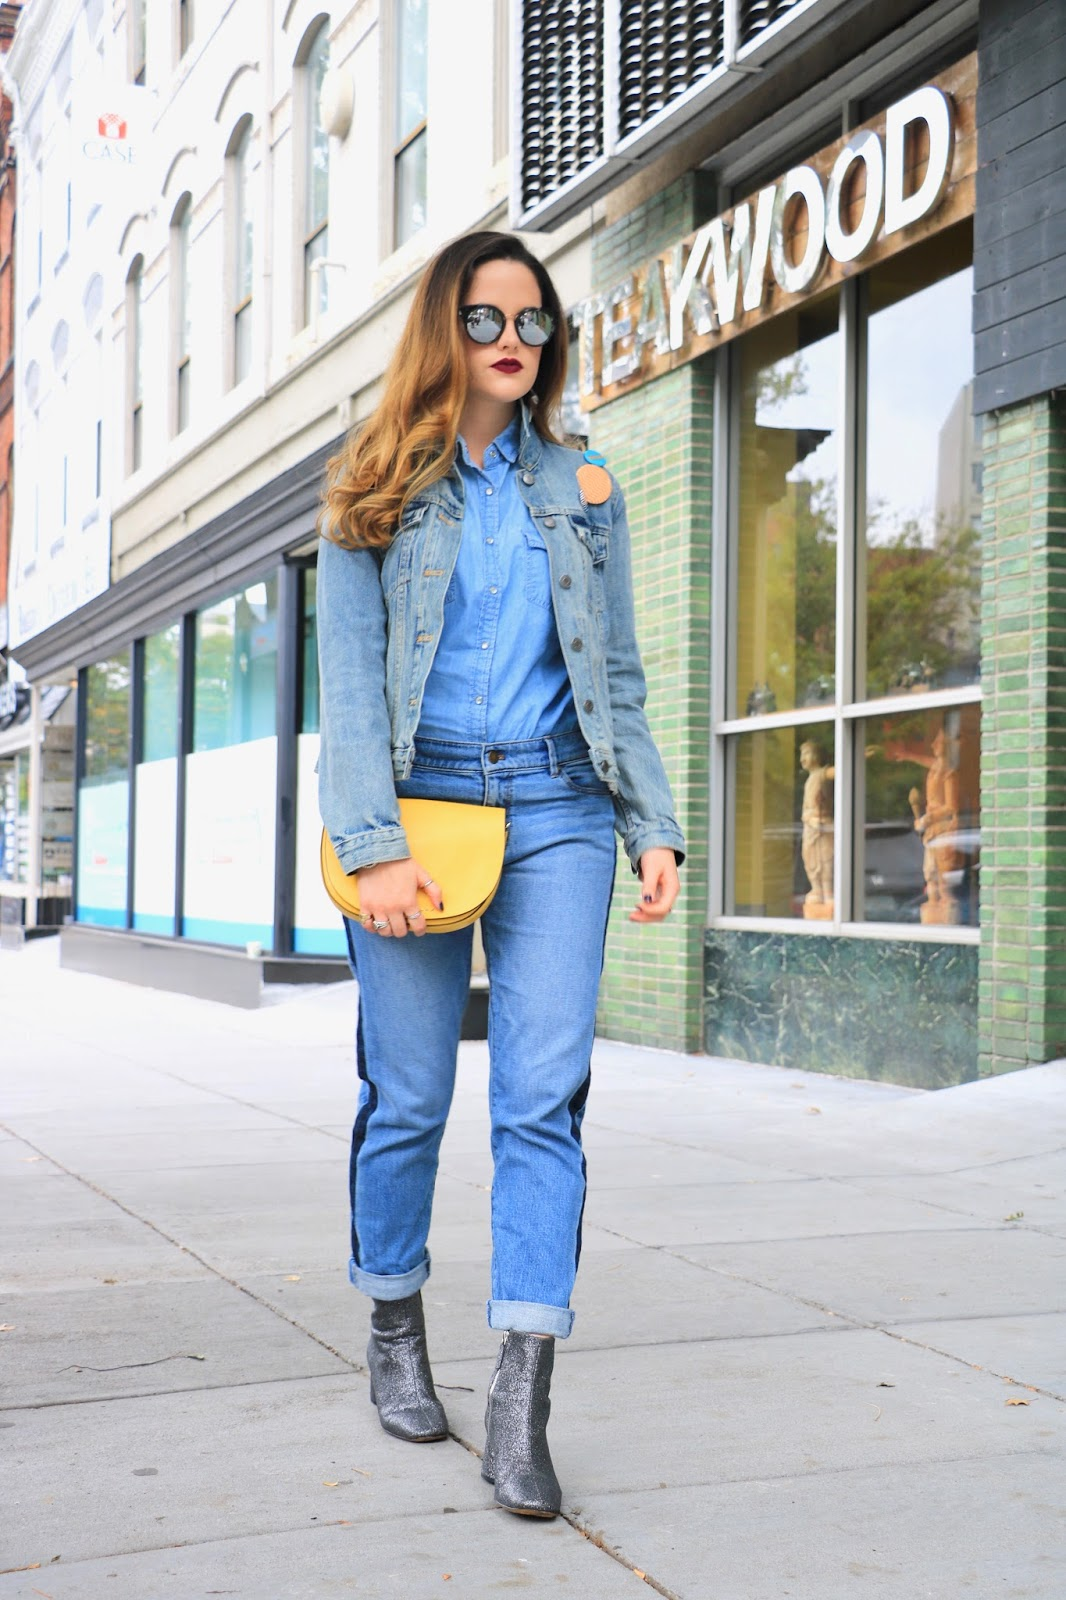 Nyc fashion blogger Kathleen Harper shows how to wear a chambray top